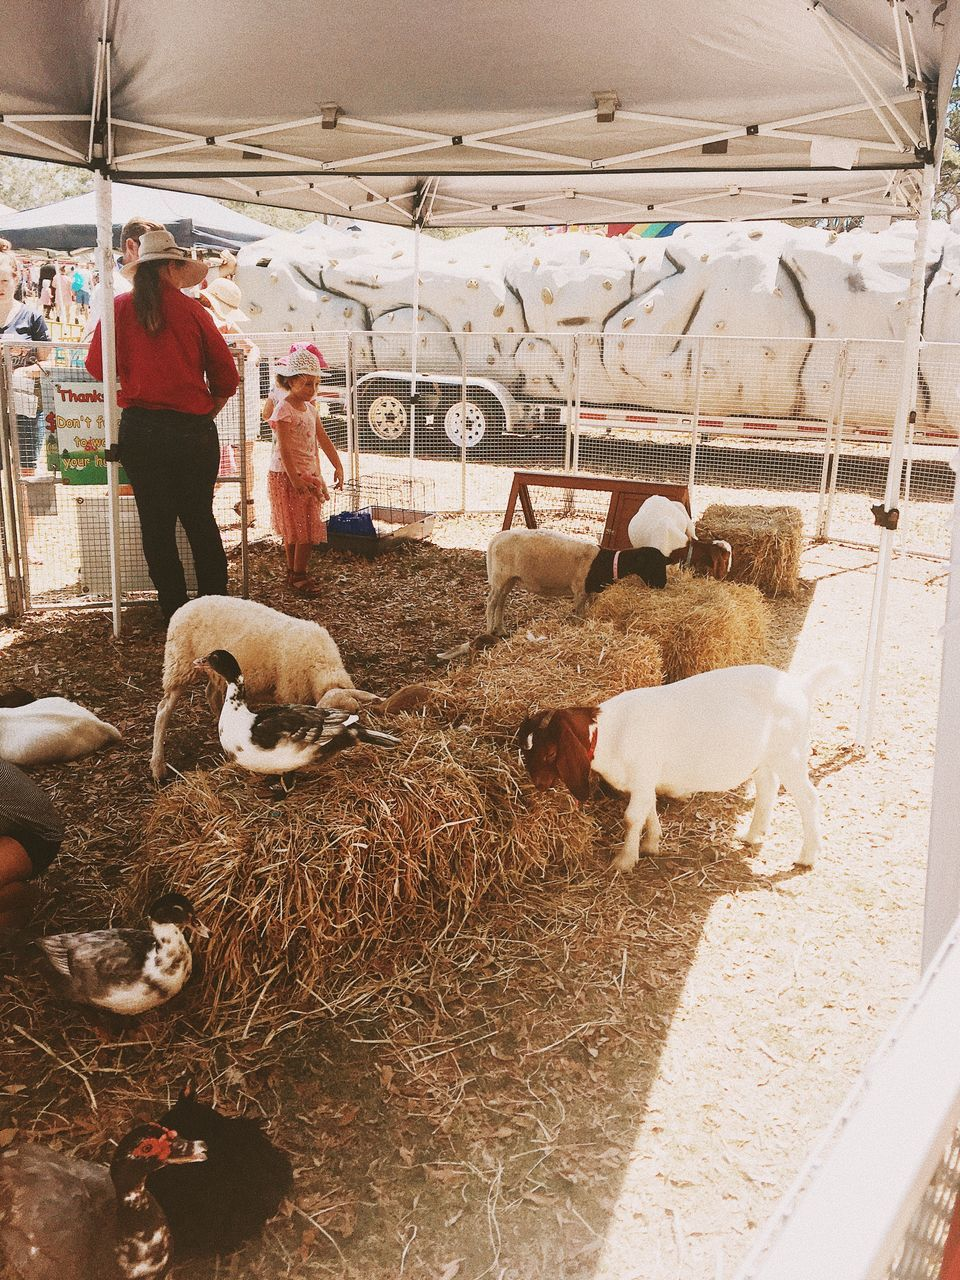 livestock, domestic animals, animal themes, mammal, sheep, full length, herbivorous, large group of animals, indoors, flock of sheep, lamb, standing, real people, day